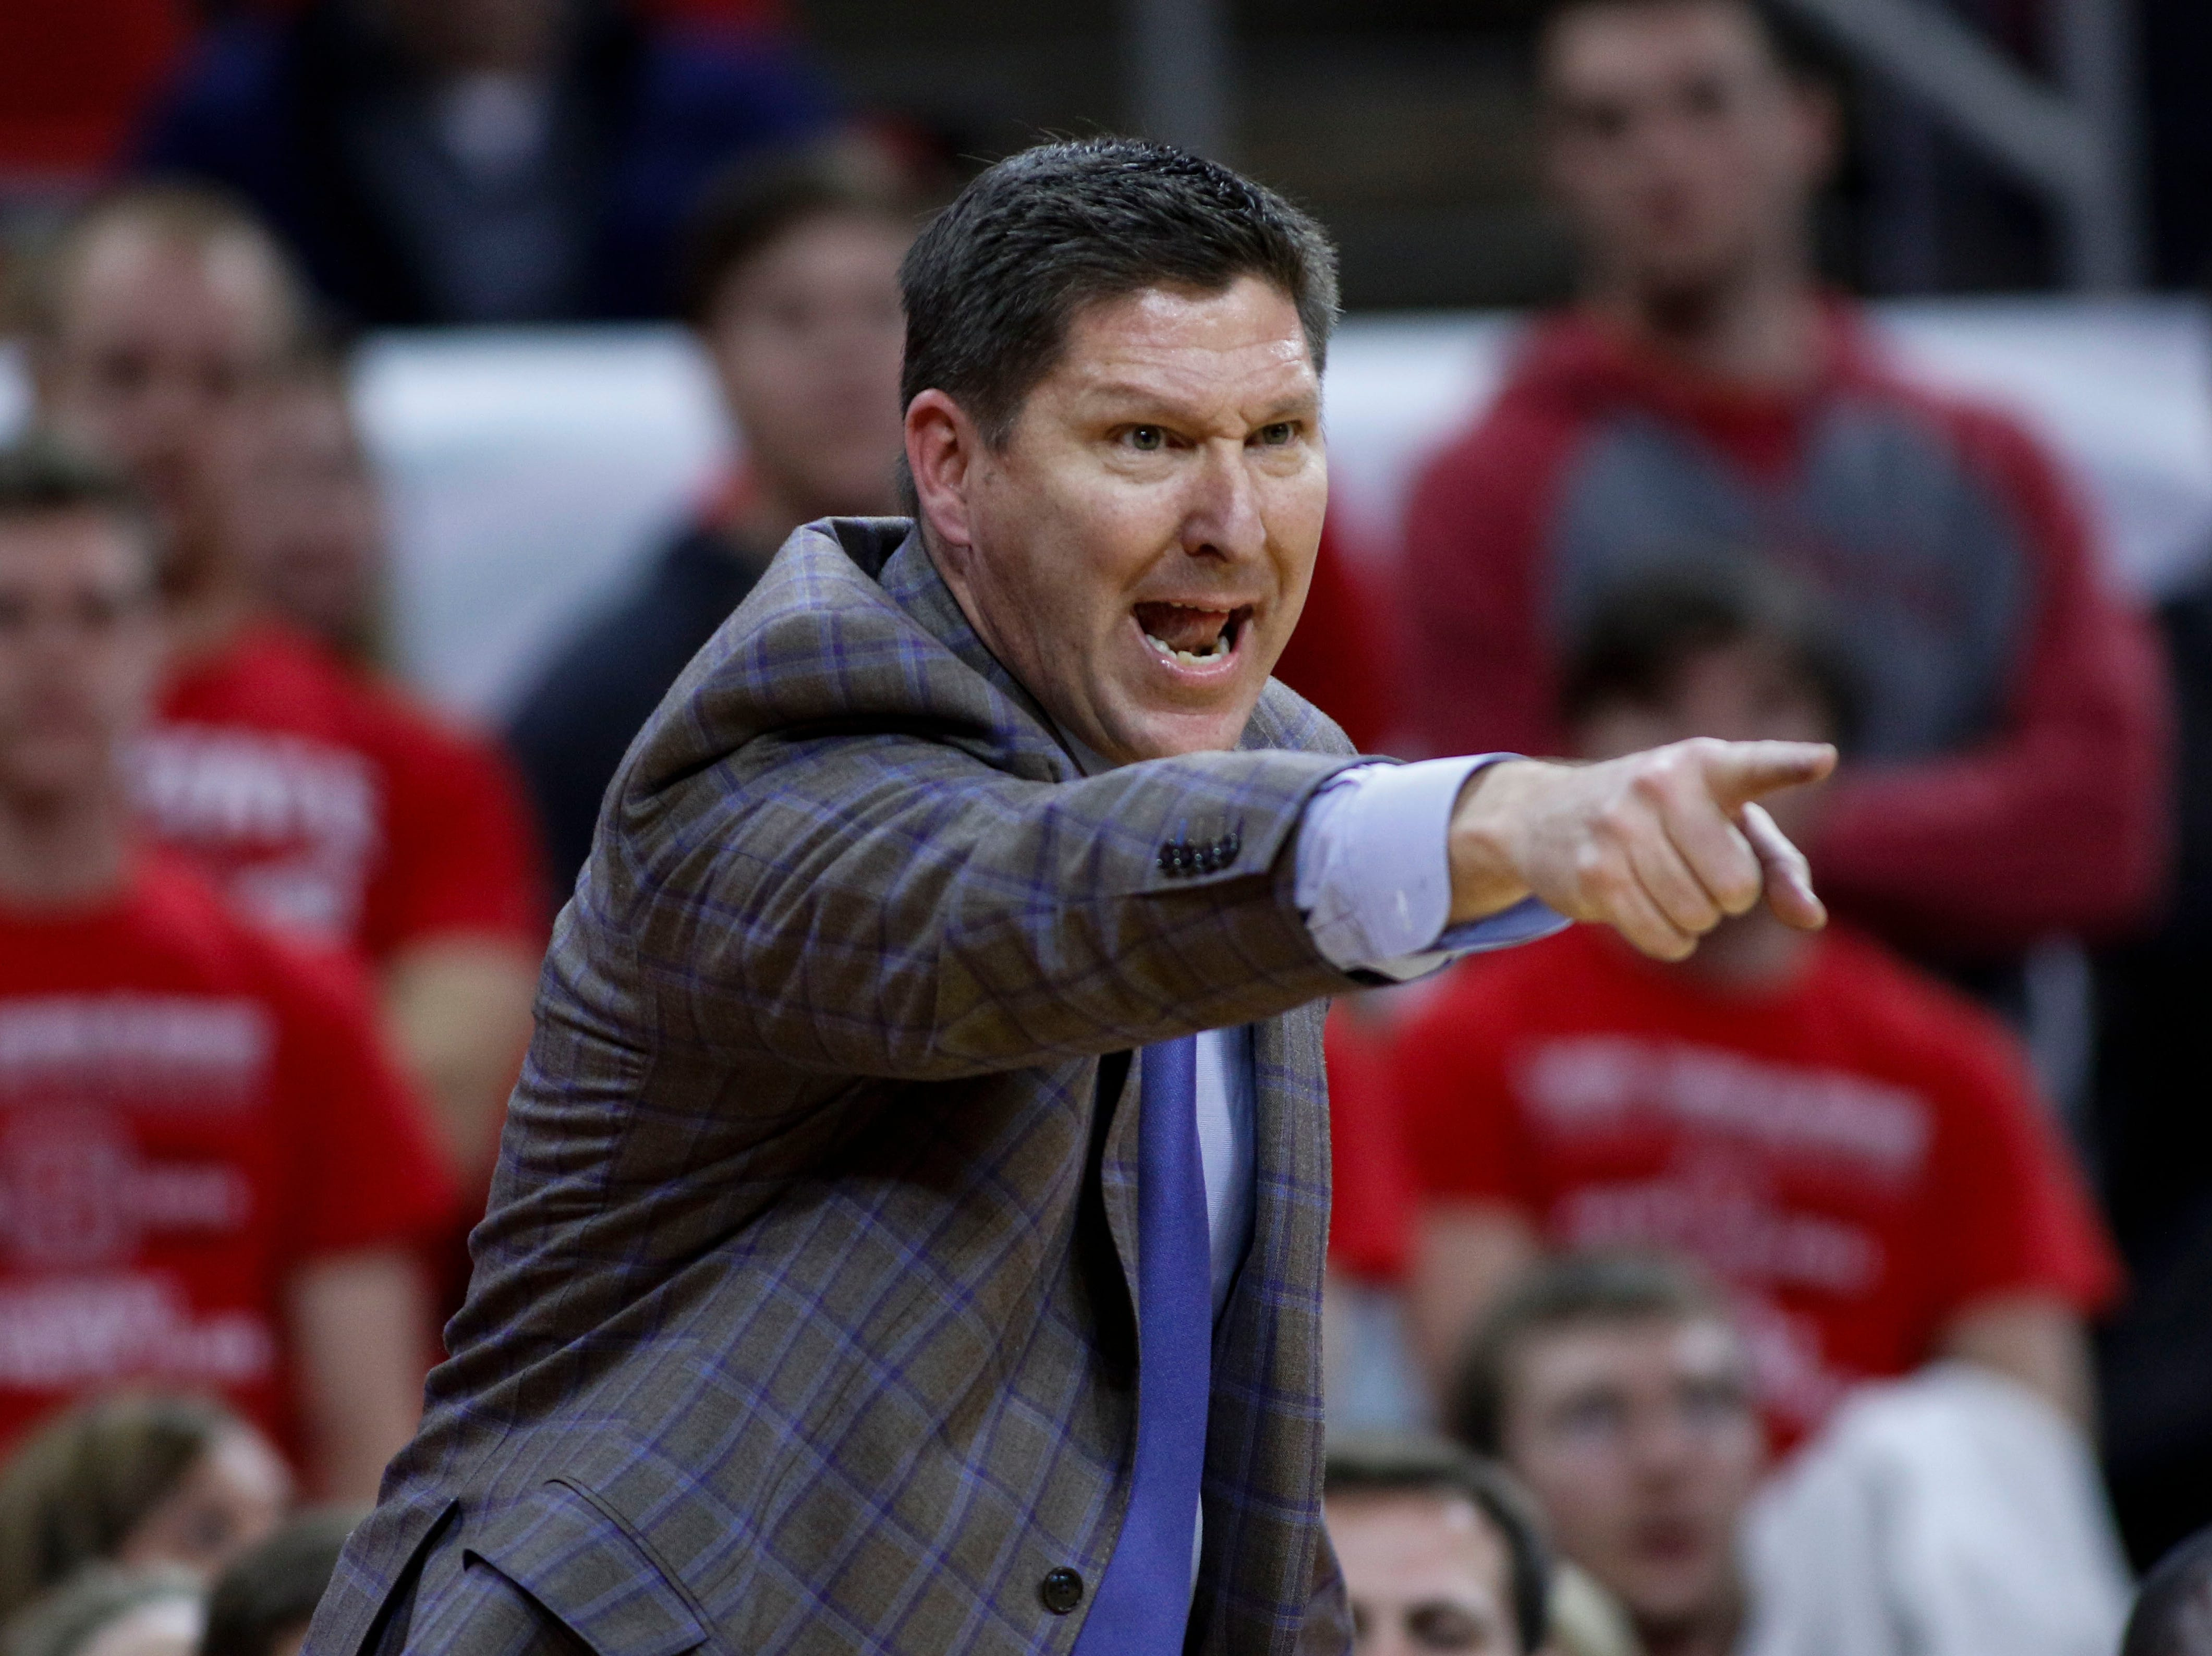 Jan 26, 2019; Raleigh, NC, USA; Clemson Tigers head coach Brad Brownell directs his team against the North Carolina State Wolfpack in the second half at PNC Arena. North Carolina State Wolfpack won 69-67. Mandatory Credit: Nell Redmond-USA TODAY Sports